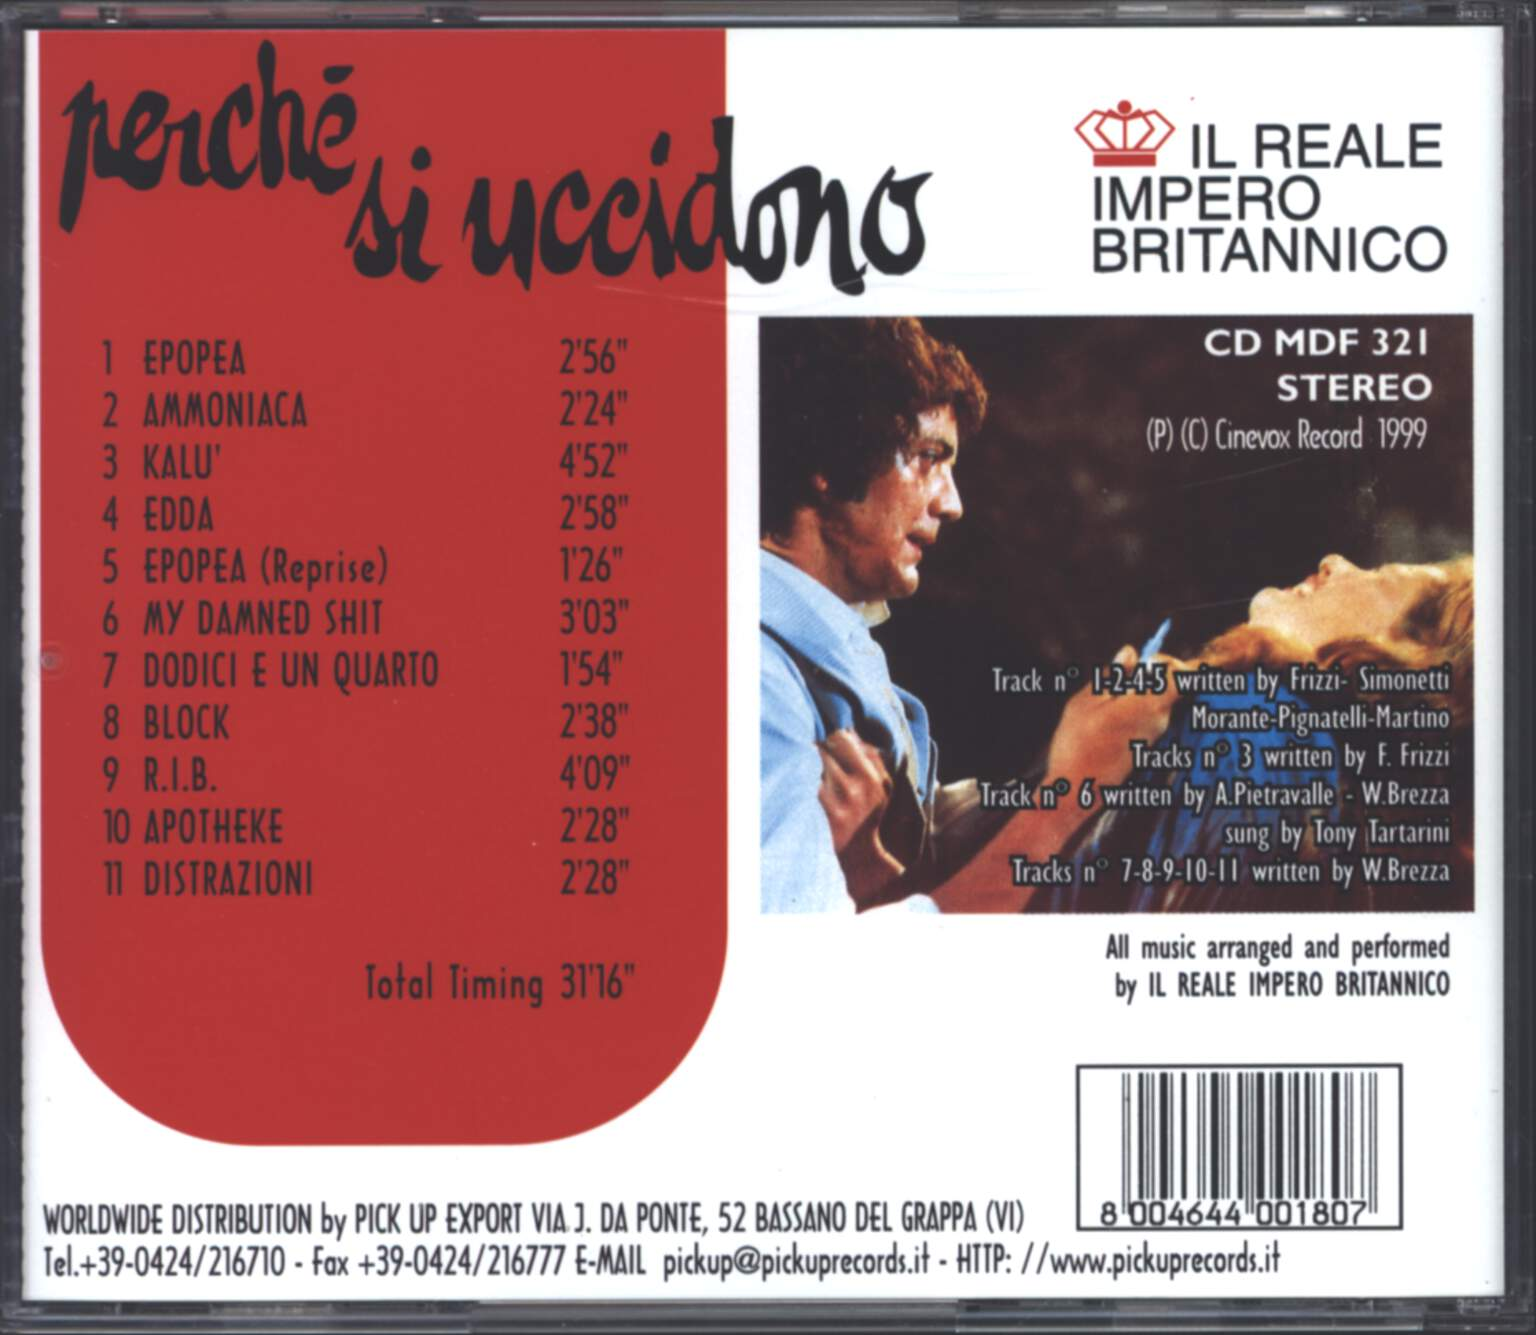 Il Reale Impero Britannico: Perché Si Uccidono (Original Motion Picture Soundtrack), CD